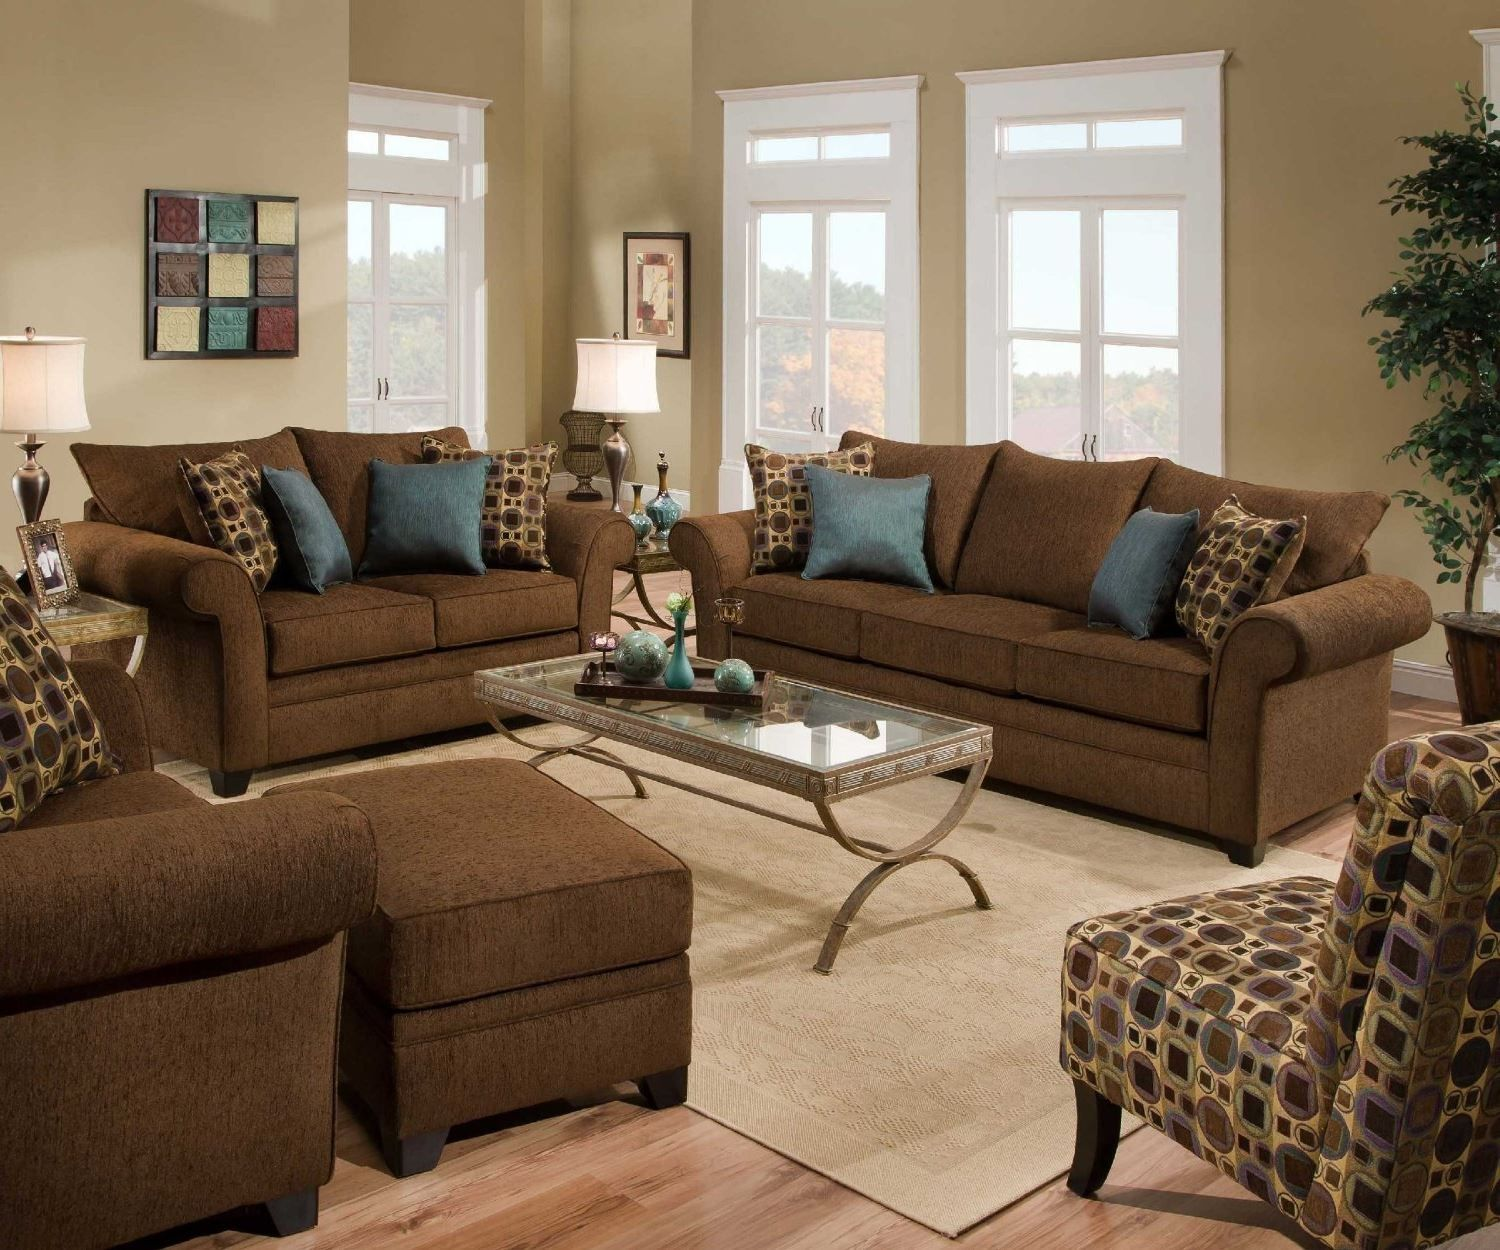 Simmons upholstery living room set intrinsiclifedesign